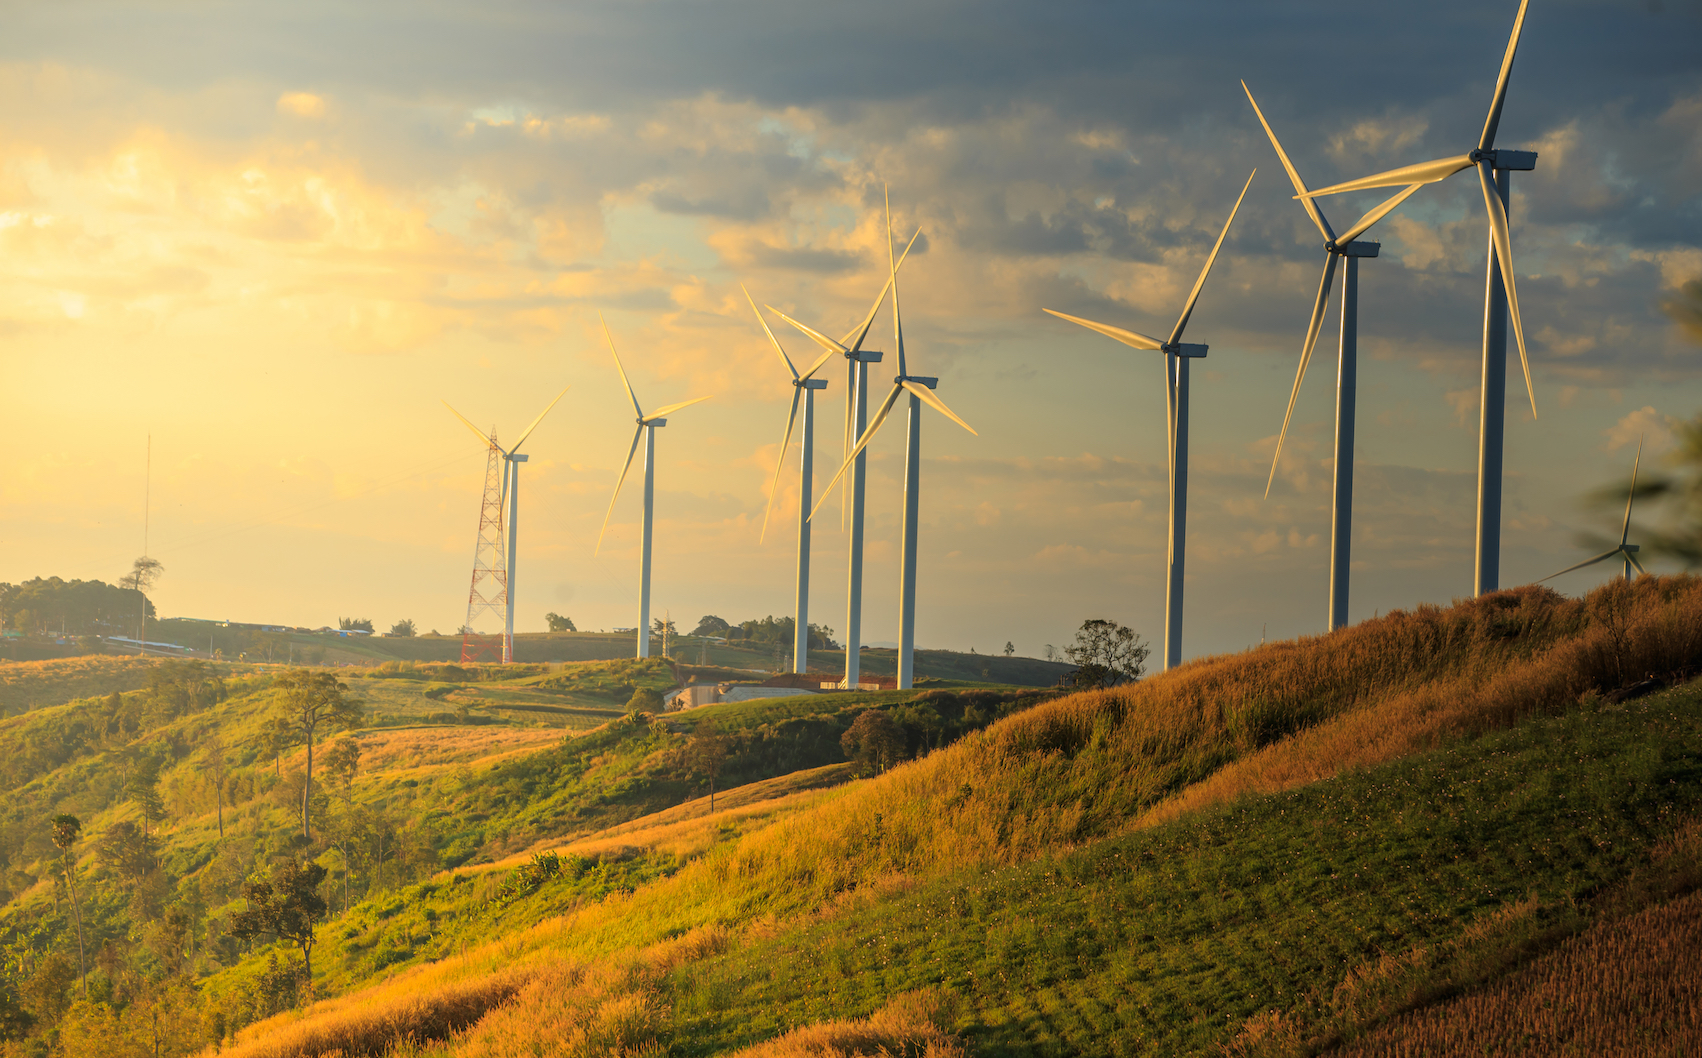 A team of researchers from the University of Toronto published an analysis of how residential distance from wind turbines affects people's health.